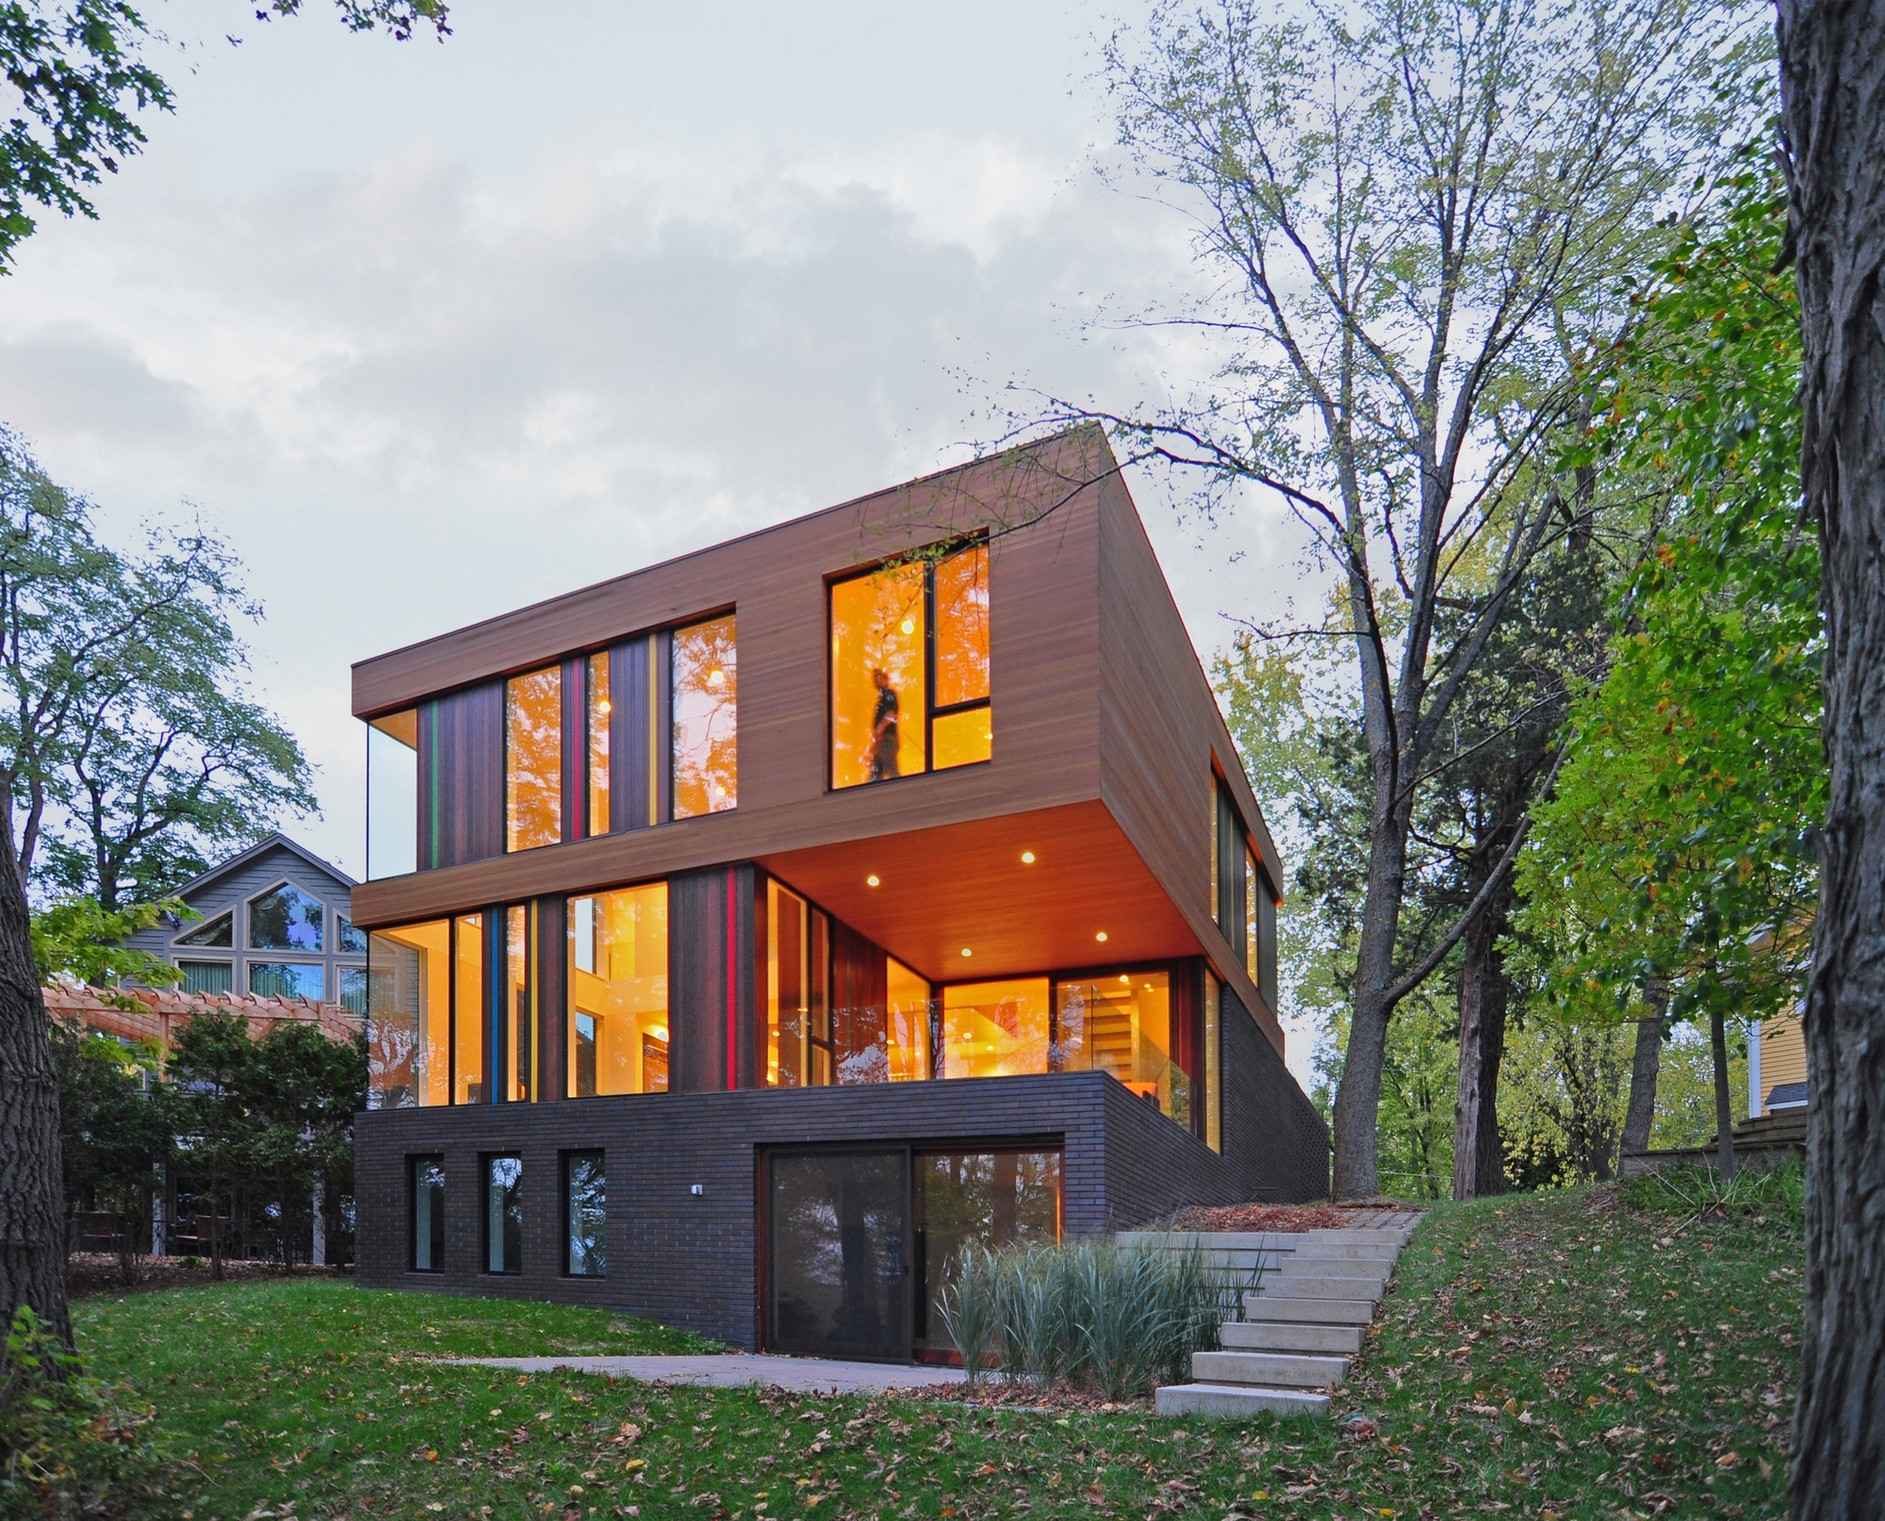 Design For Small House: Redaction House By Johnsen Schmaling Architects